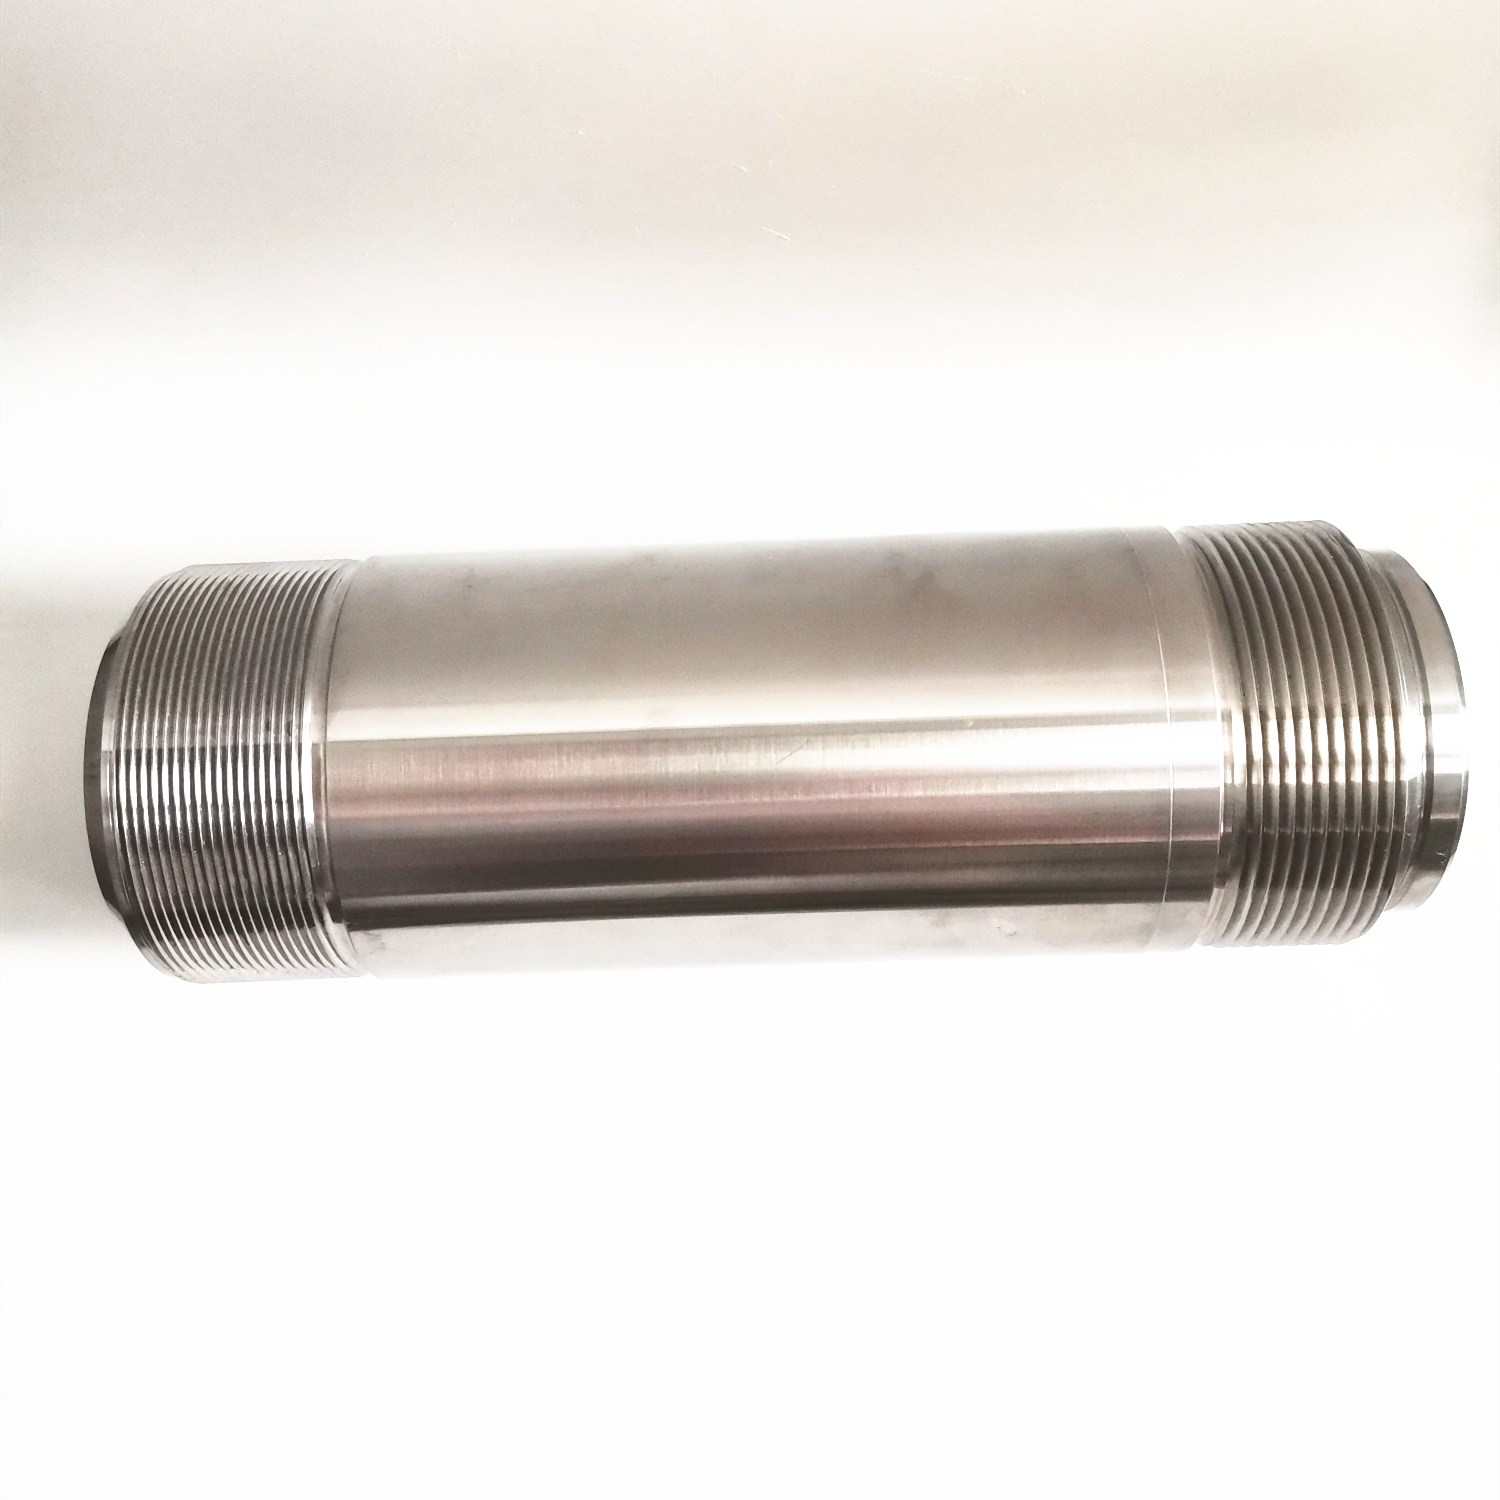 "water jet cutter spare parts replaces 10138444 3/8"" waterjet nozzle tube 7.65"" is worth your trying"